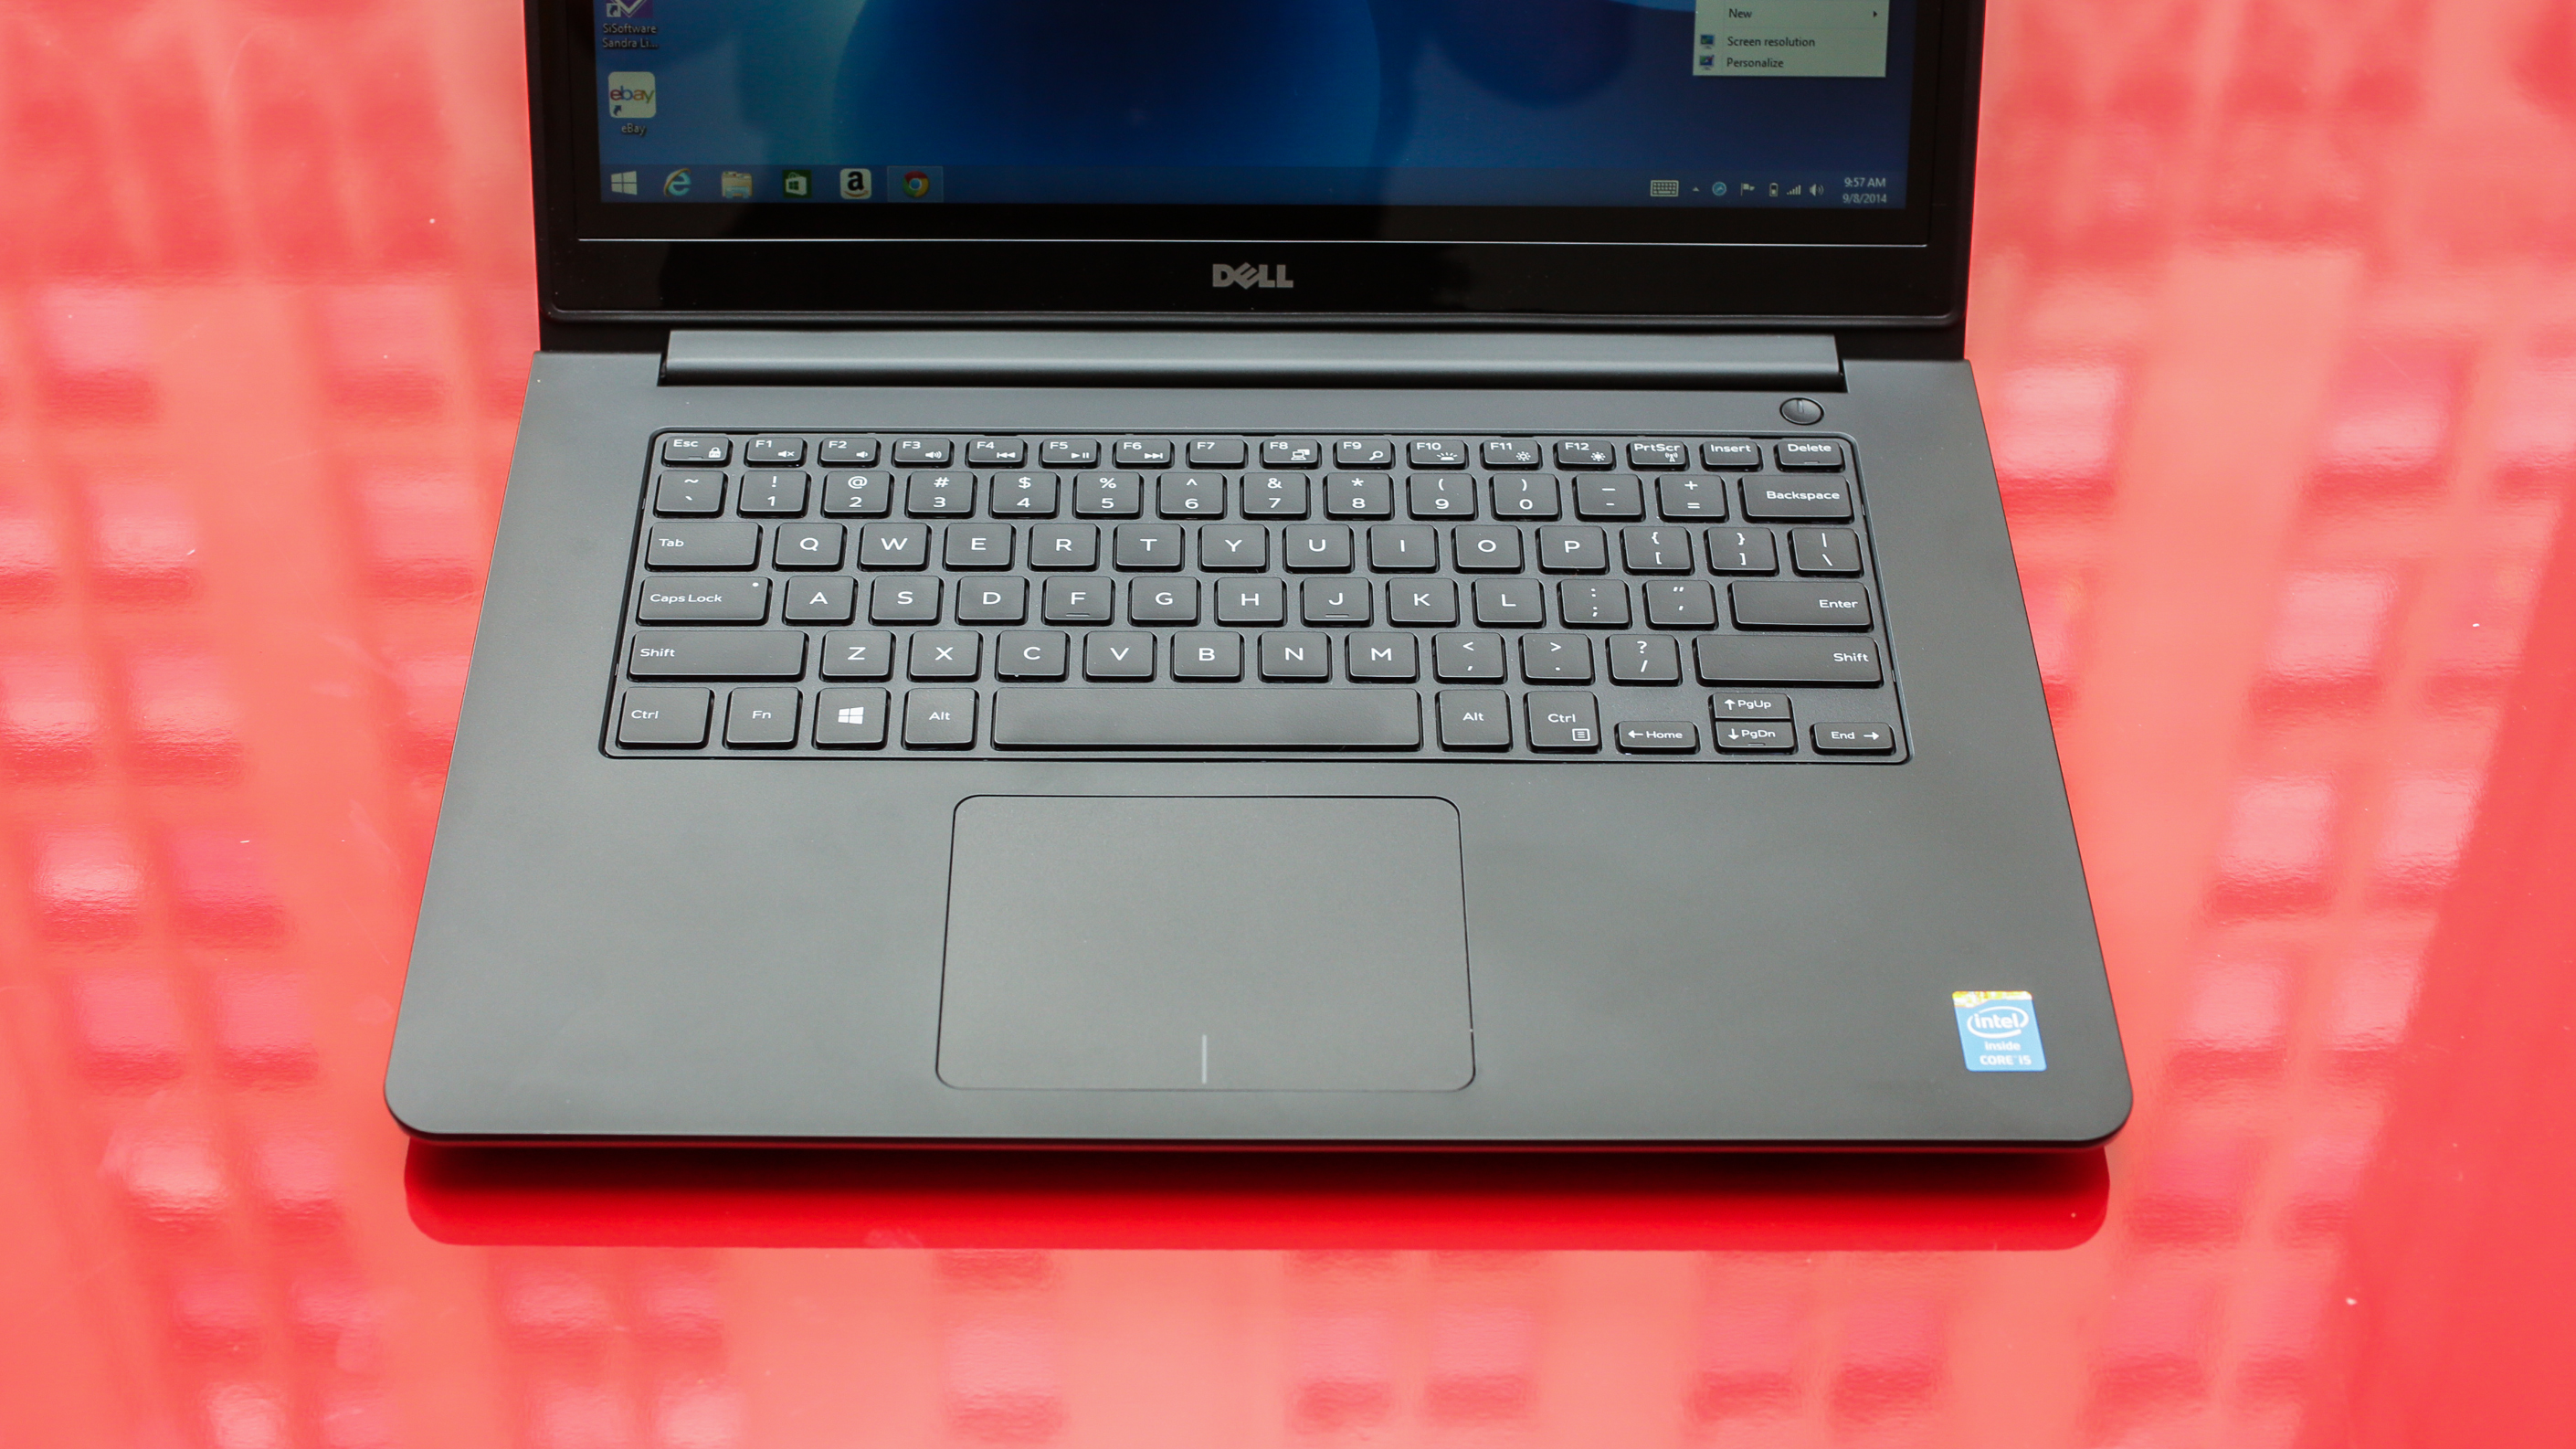 dell-inspiron-14-5000-product-photos10.jpg